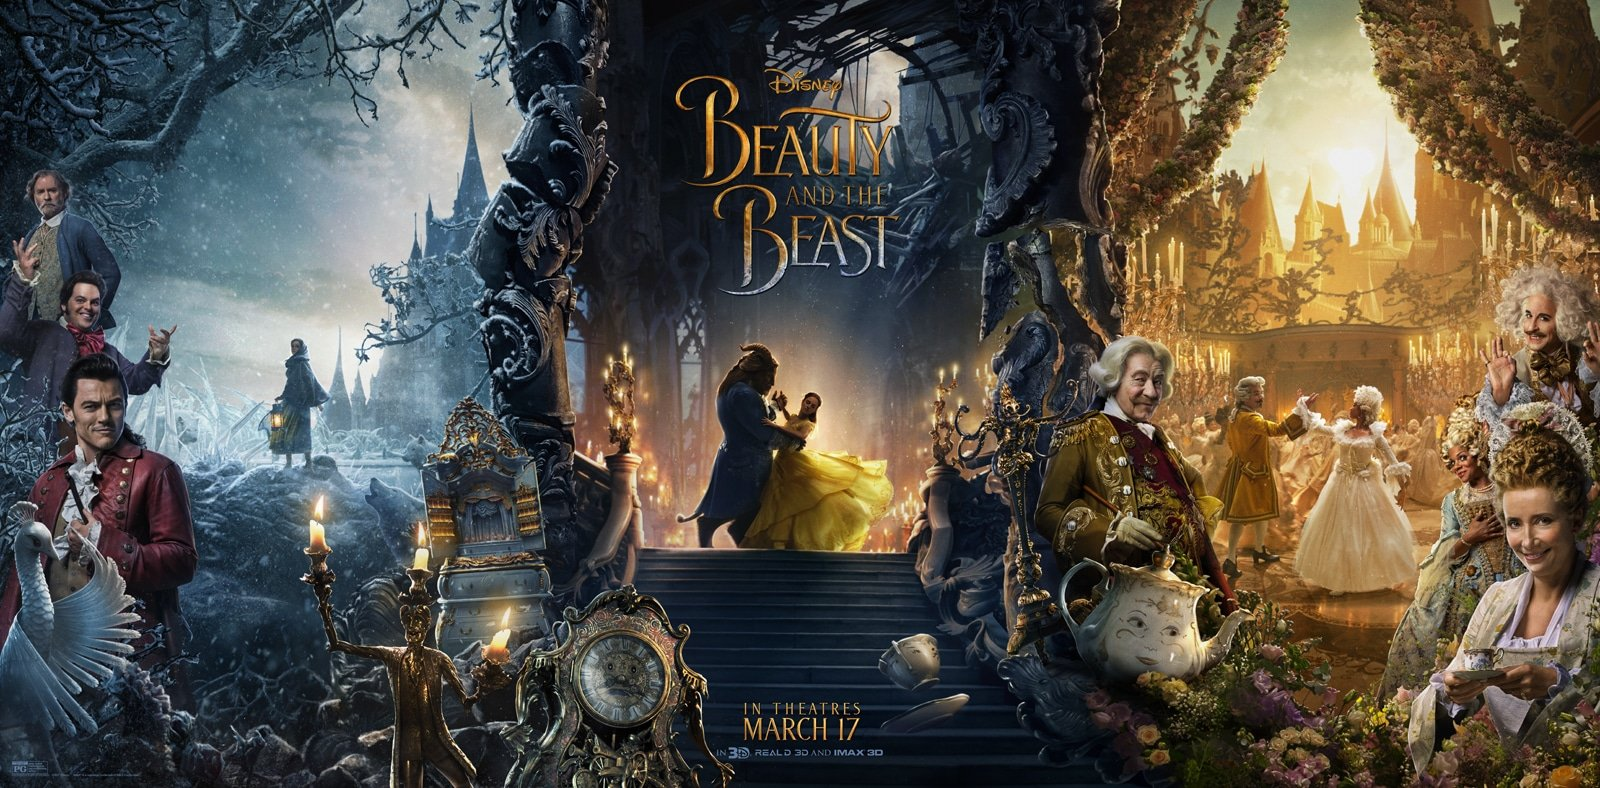 Disney's Beauty and the Beast – Final Trailer and Character Posters